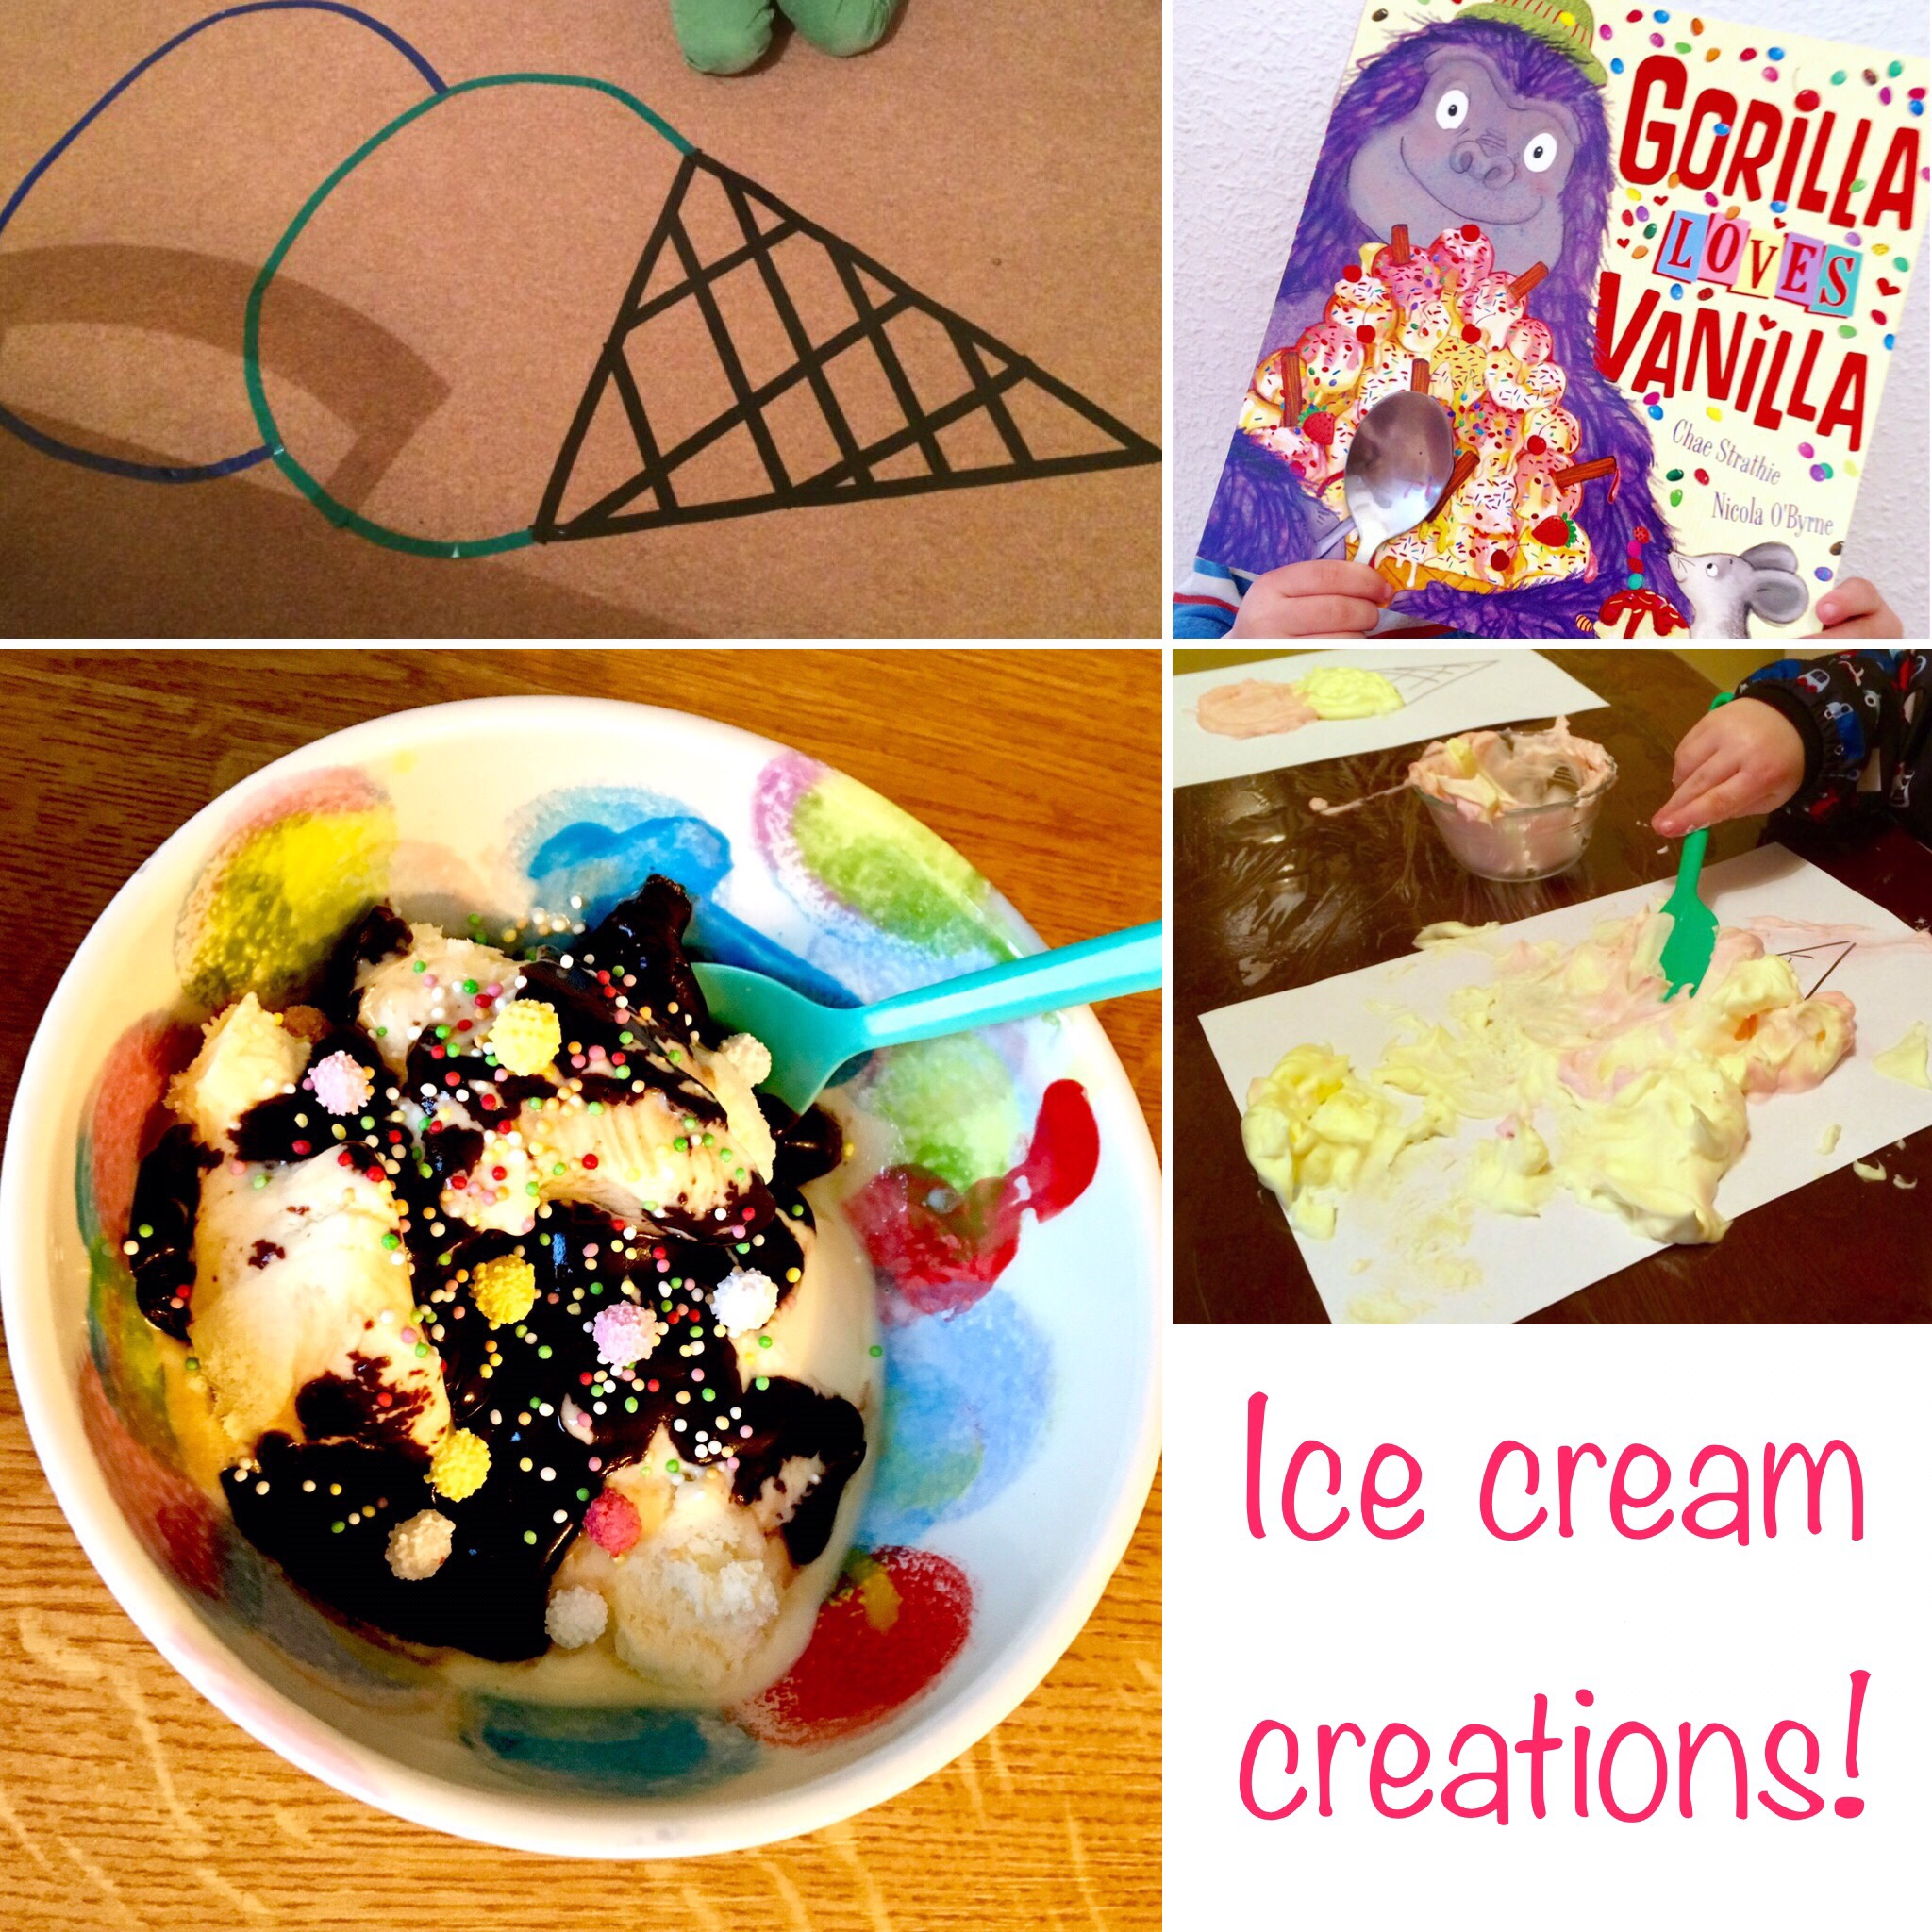 Gorilla loves vanilla ice cream creations homegrown reader forumfinder